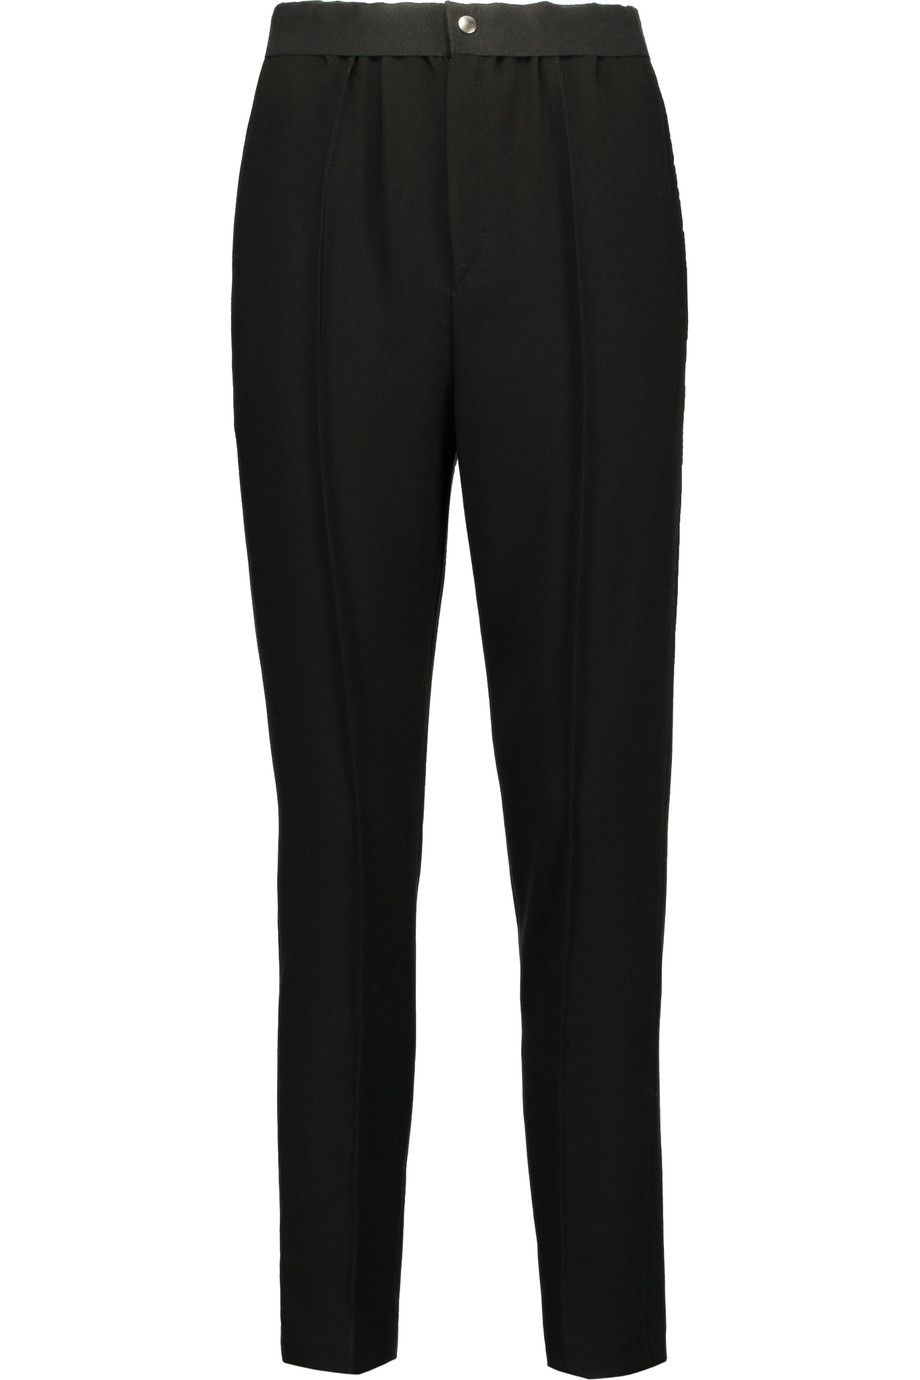 Shop on-sale Étoile Isabel Marant Mock crepe tapered pants. Browse other discount designer Pants & more on The Most Fashionable Fashion Outlet, THE OUTNET.COM